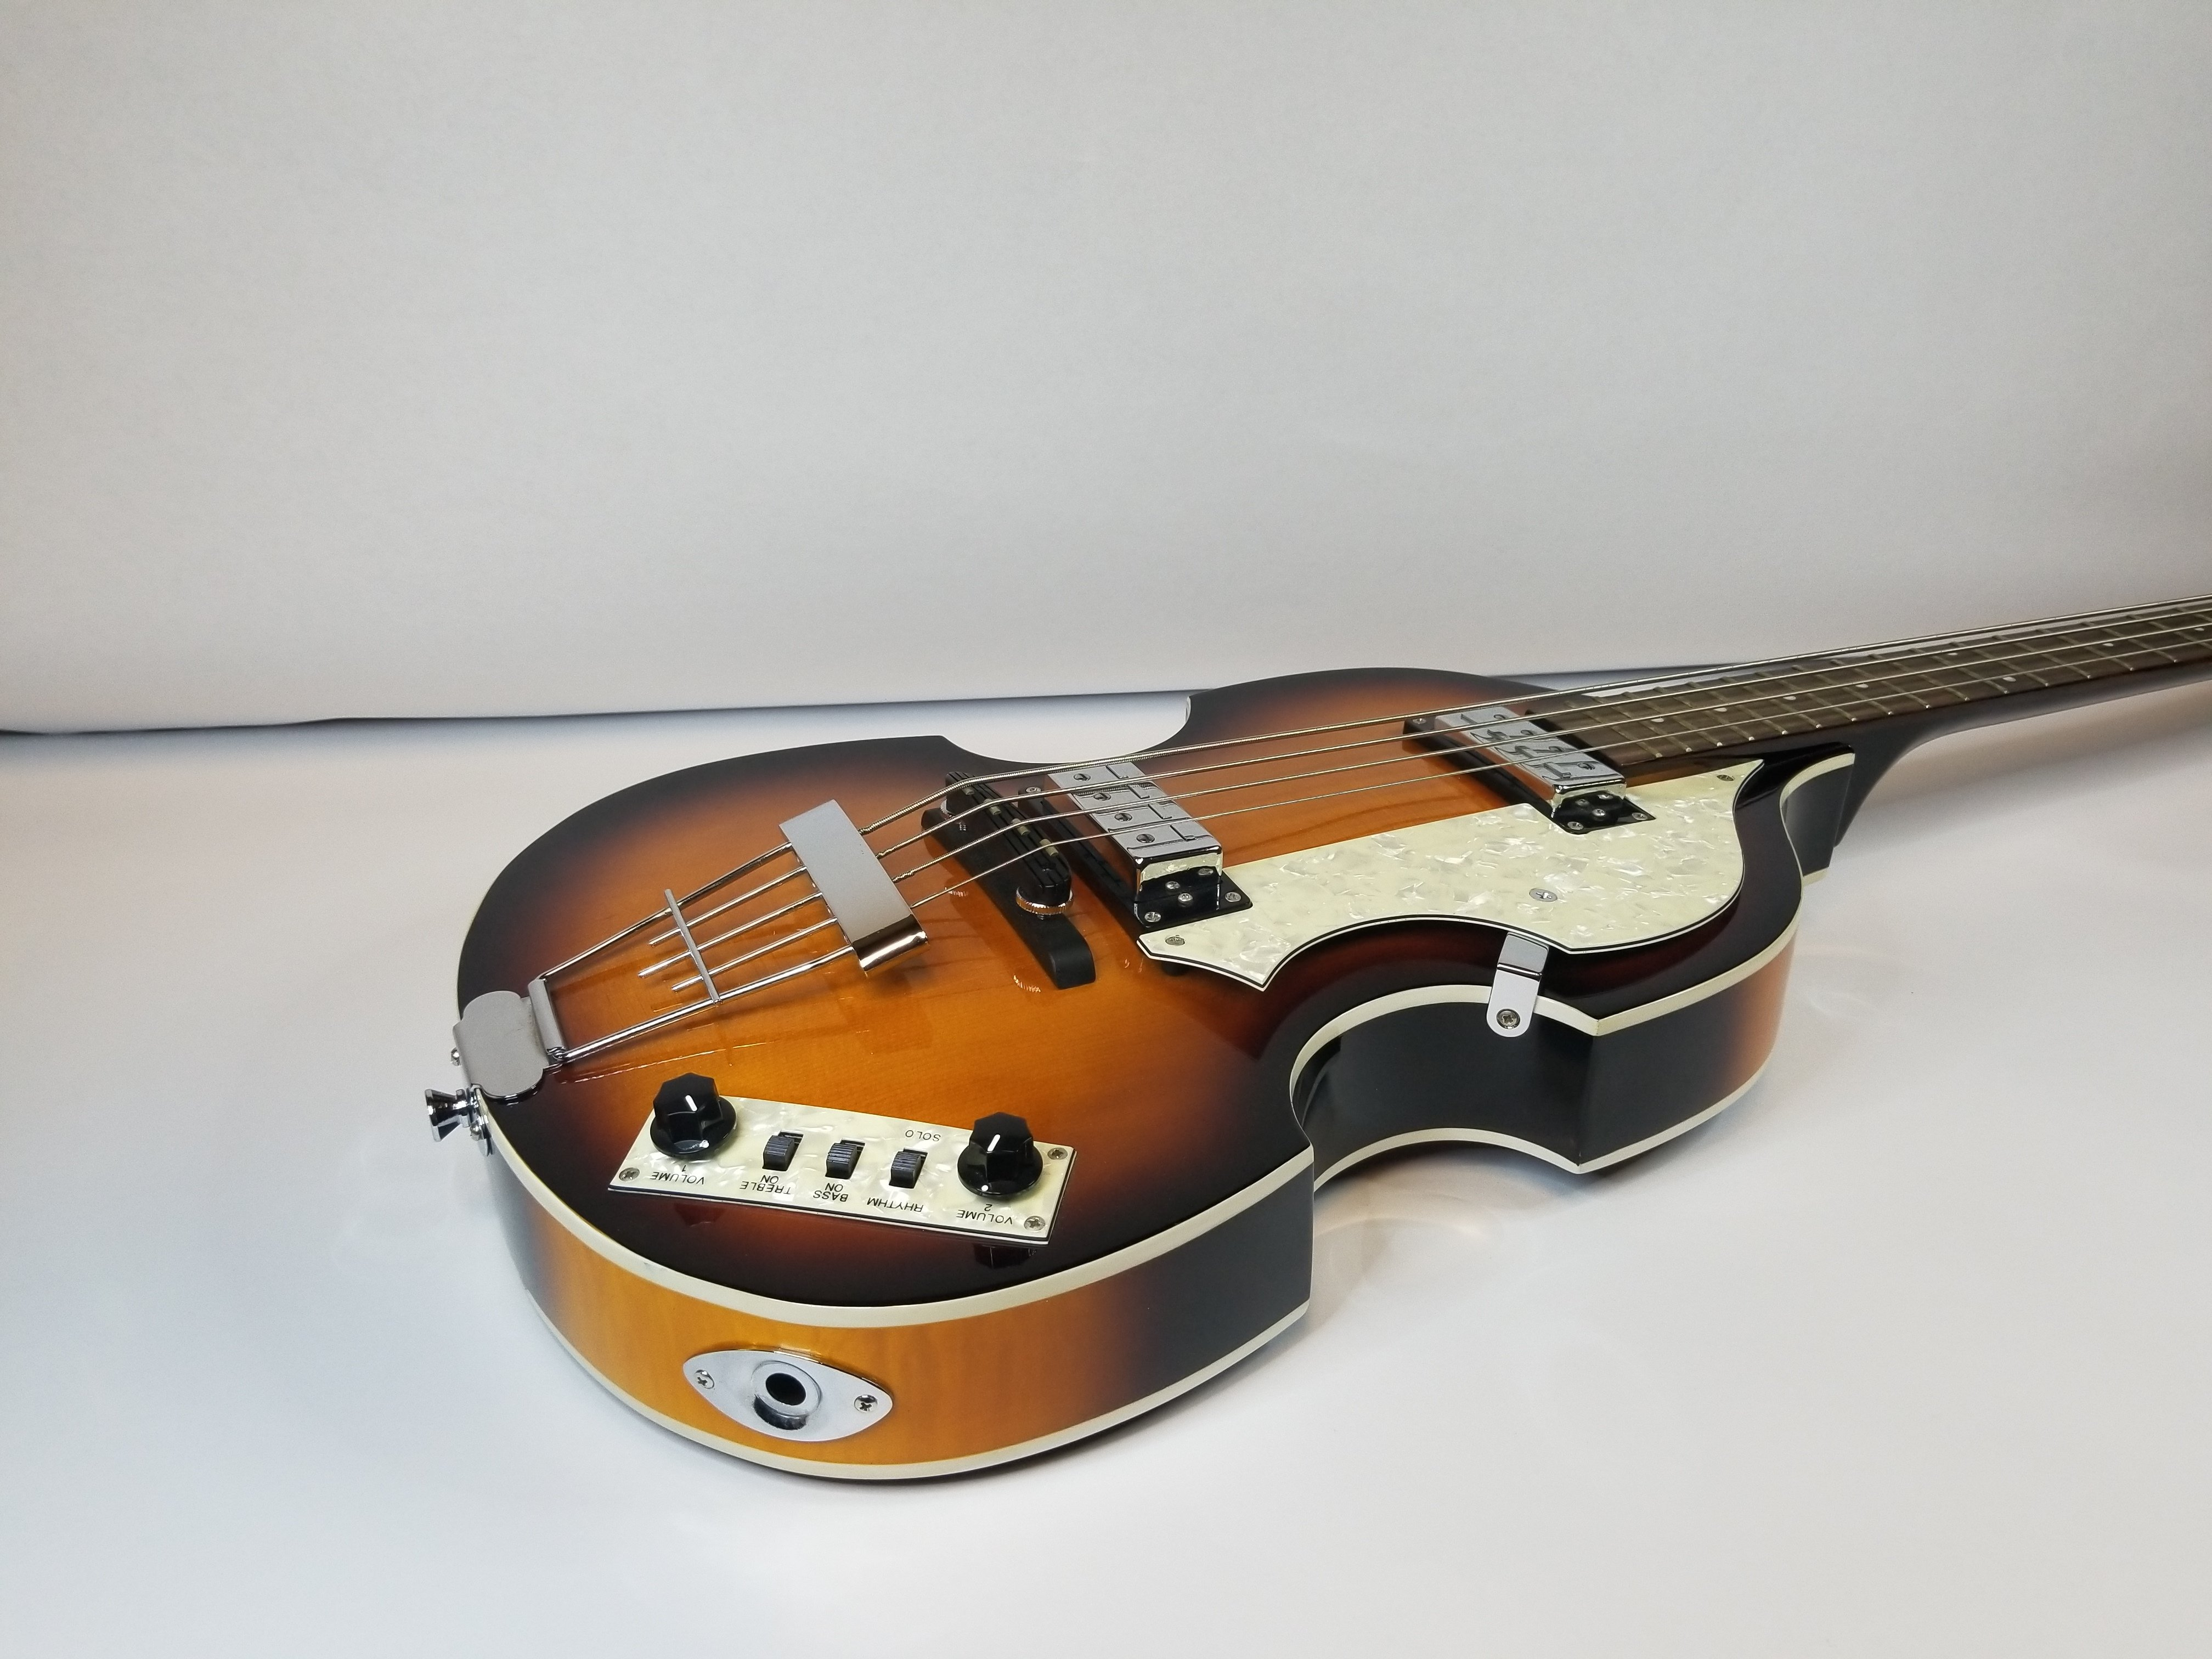 Replacing the Audio Jack on a Hofner Violin Bass - iFixit Repair GuideiFixit